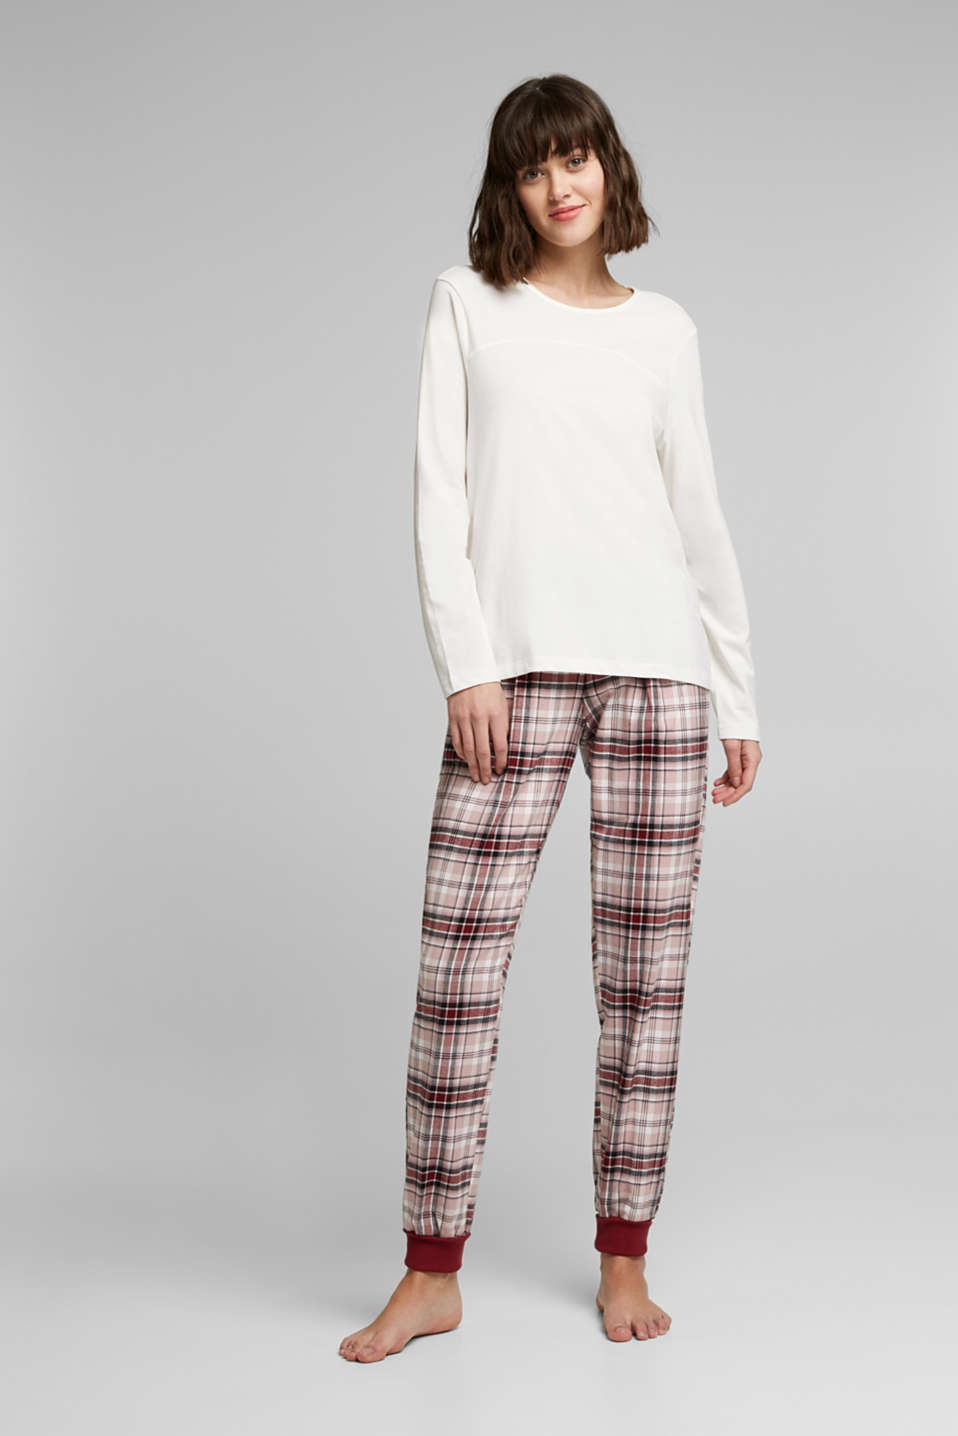 Esprit - Pyjamas made of organic cotton